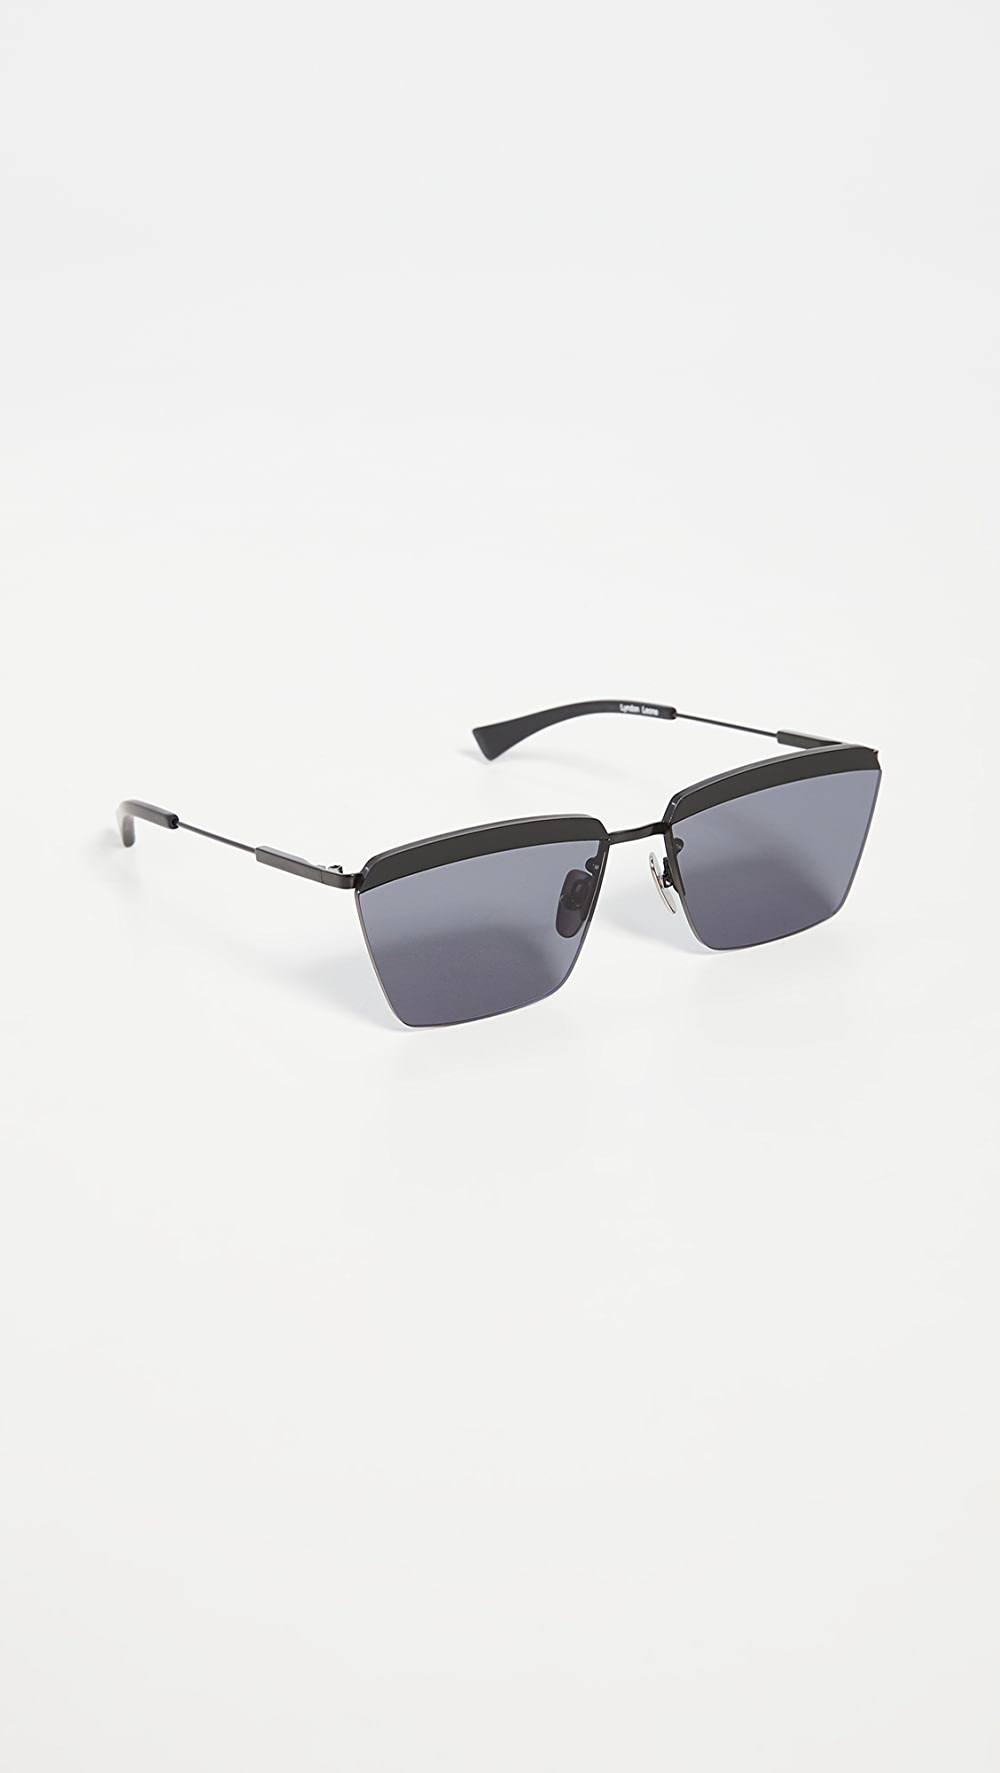 Able Lyndon Leone - Washington Sunglasses Low Price